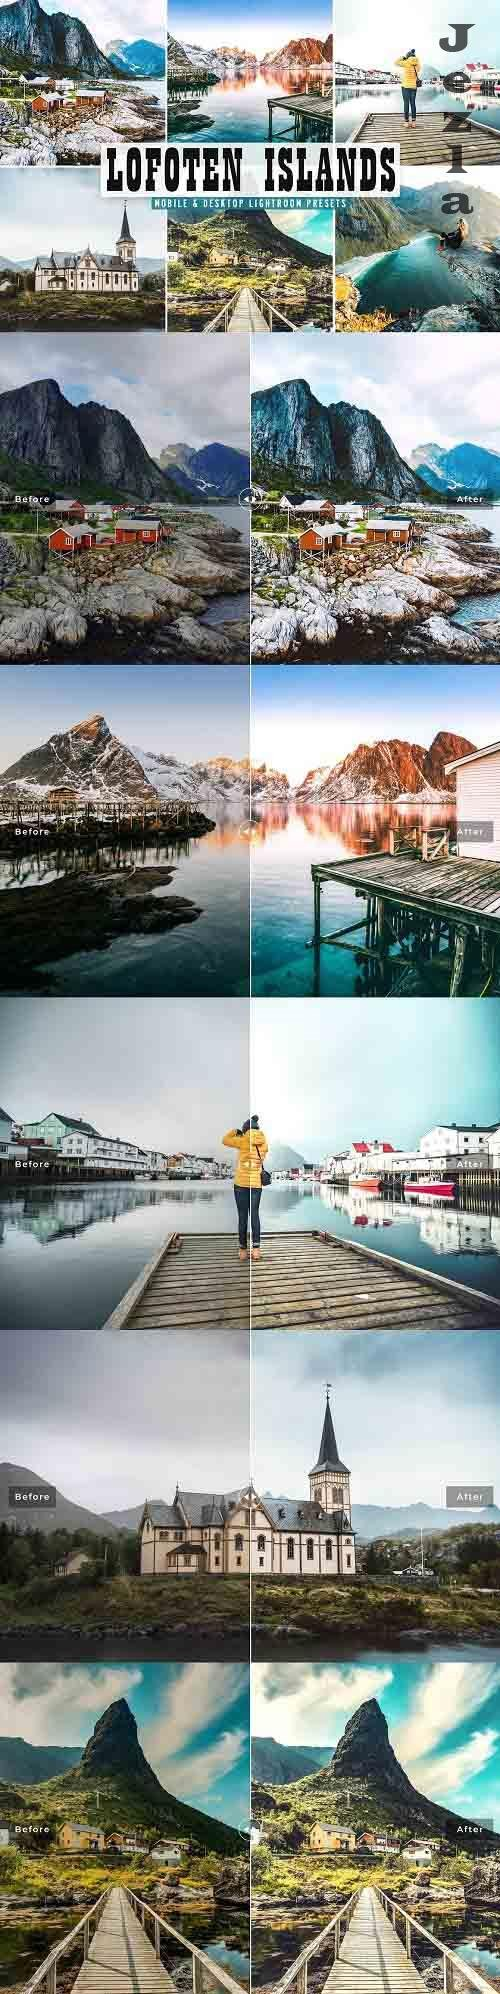 Lofoten Islands Lightroom Presets - 5603809 - Mobile & Desktop